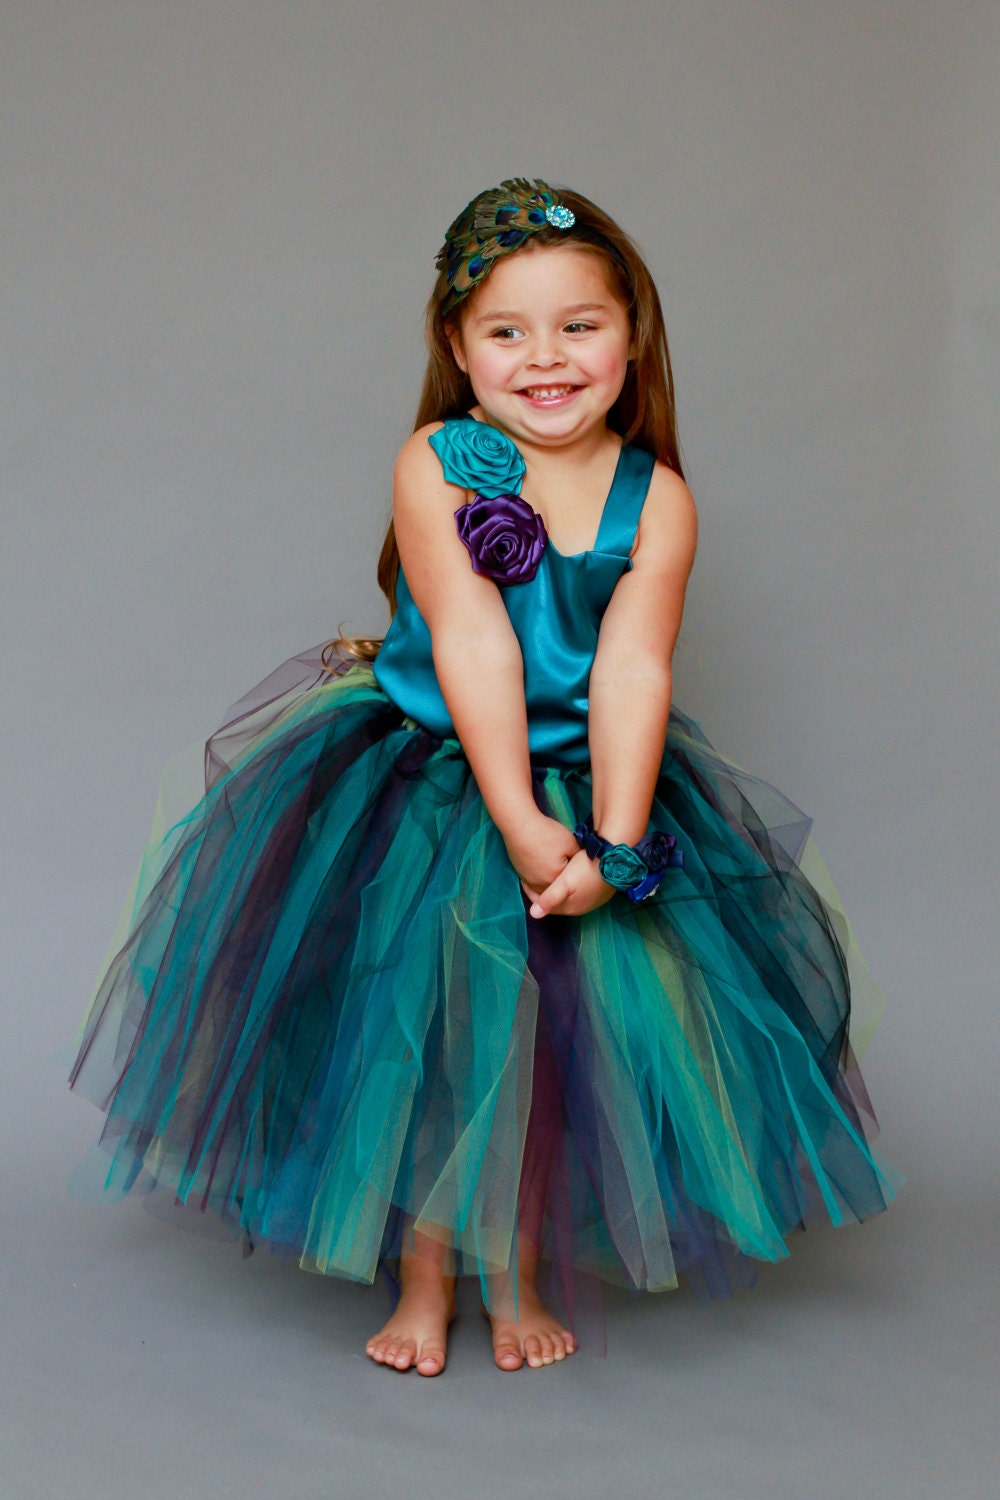 The Haven..Pretty in Peacock 2 Piece Satin Top with Satin Rolled Flowers and Floor length Peacock Tutu Skirt.. Free gift with purchase...